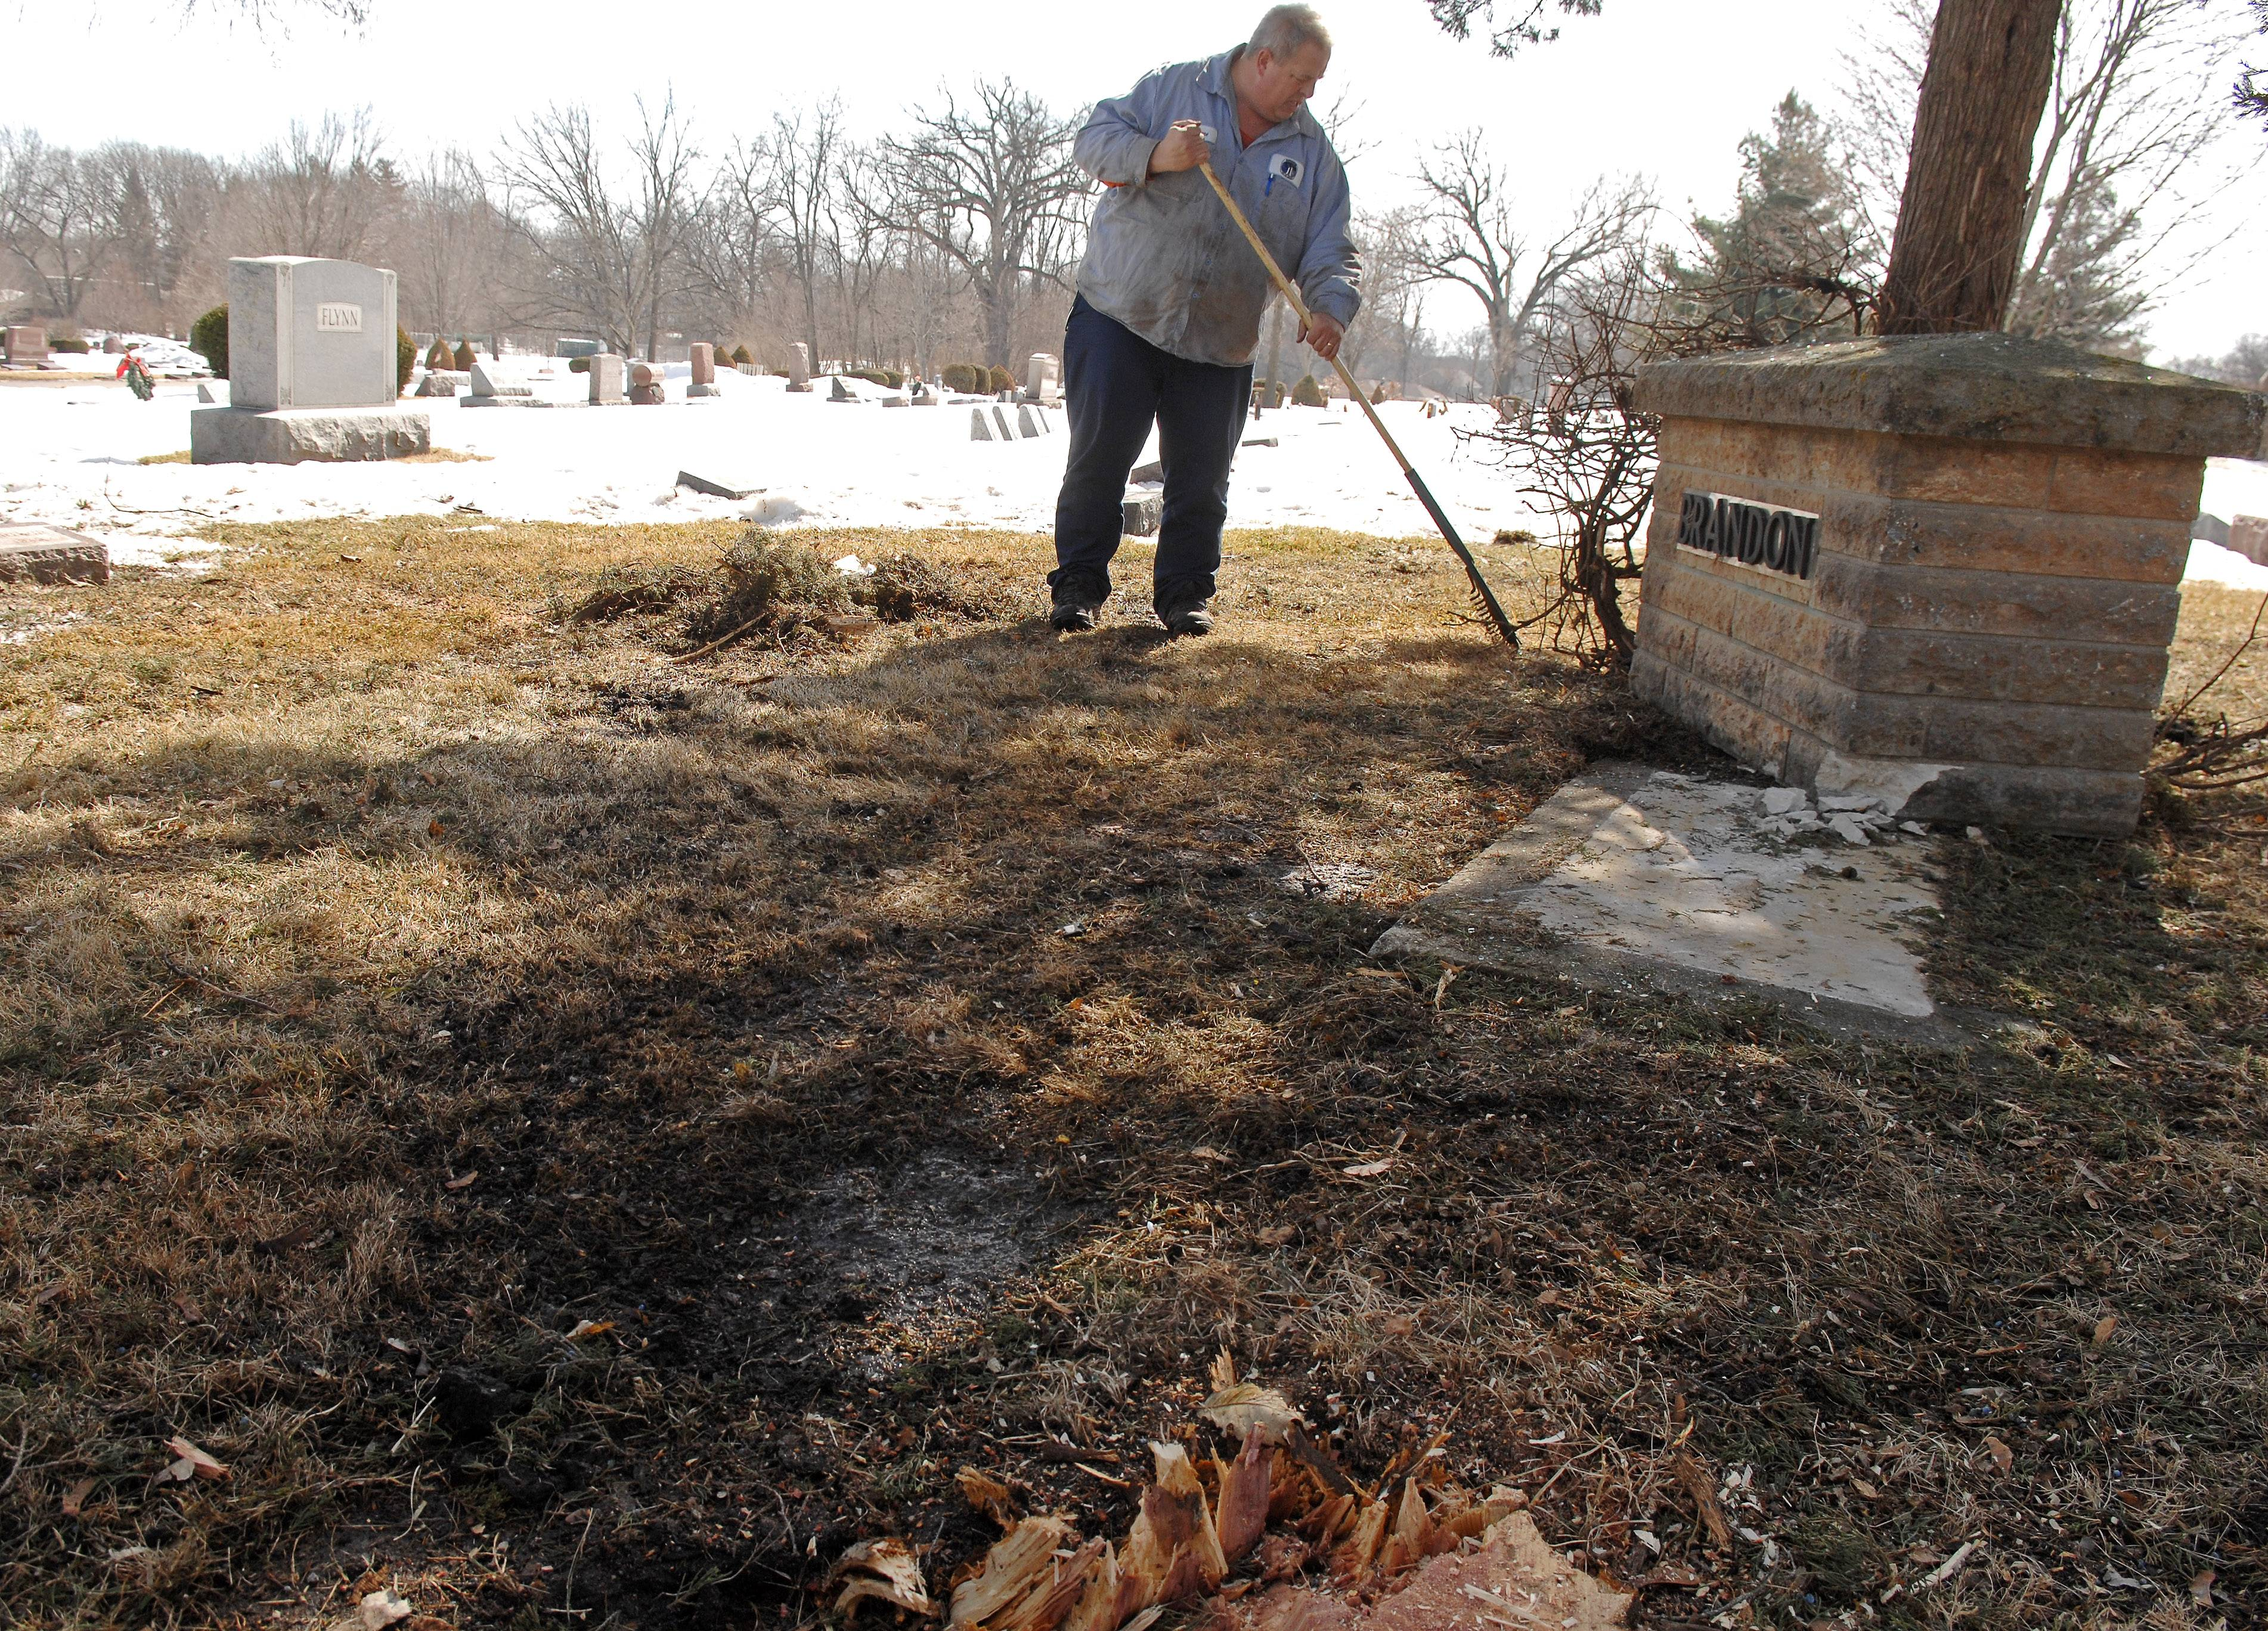 Wayne Gullickson of the Batavia Cemetery Department cleans the area of debris after a family marker was damaged and a cypress tree knocked over at West Batavia Cemetery by a drunken driver. Gullickson and a co-worker chipped up the tree earlier.